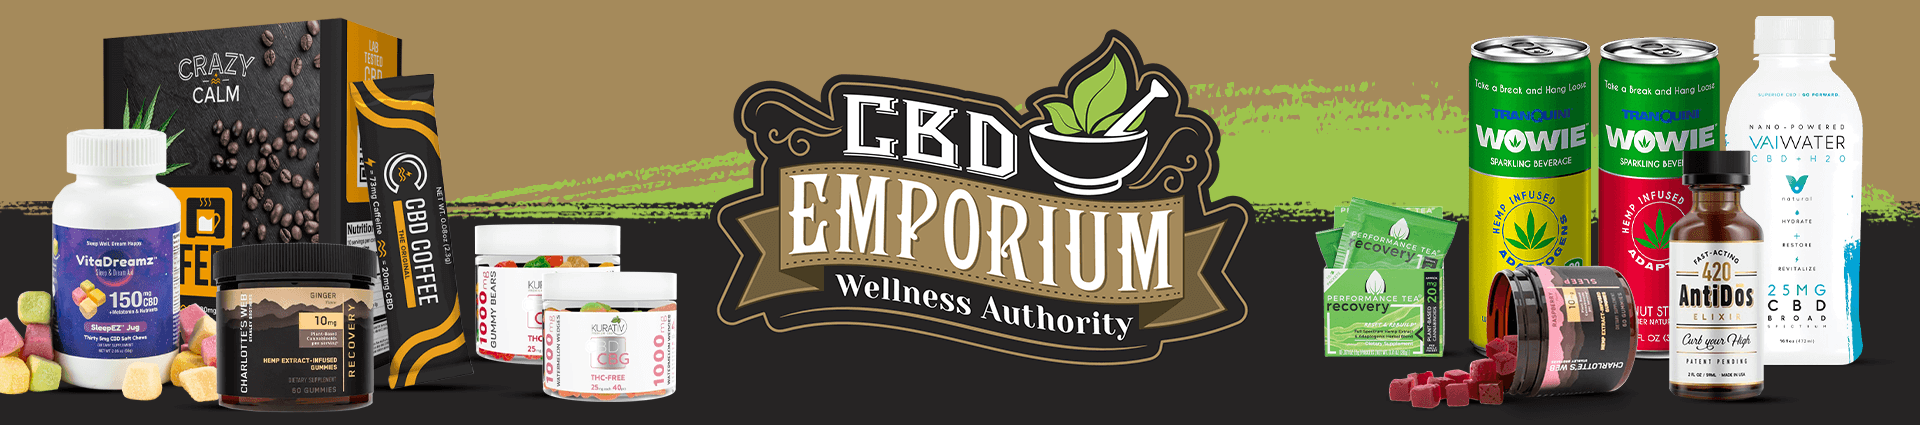 CBD Edibles & Beverages at CBD Emporium